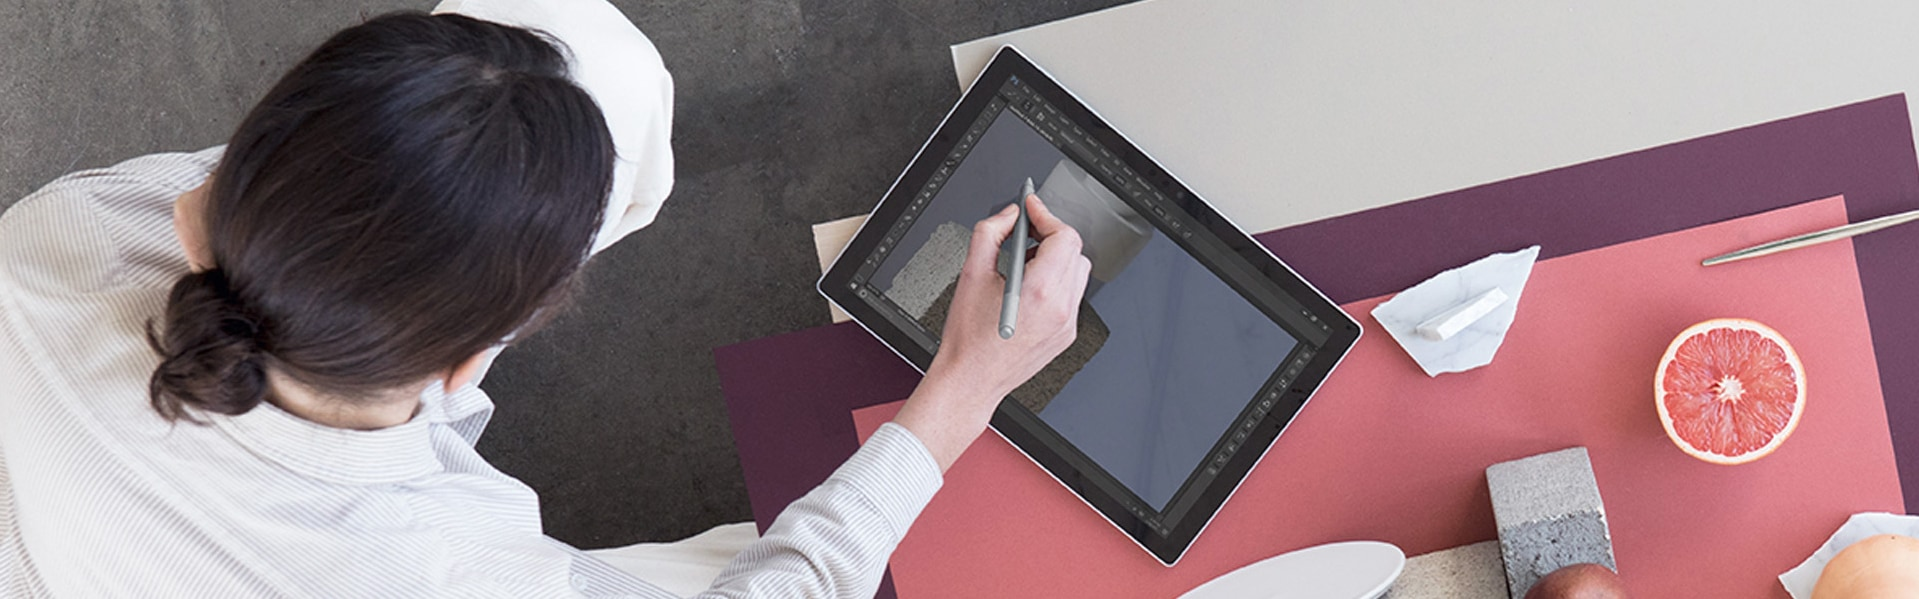 A person draws on their Surface Pro touchscreen with Surface Pen